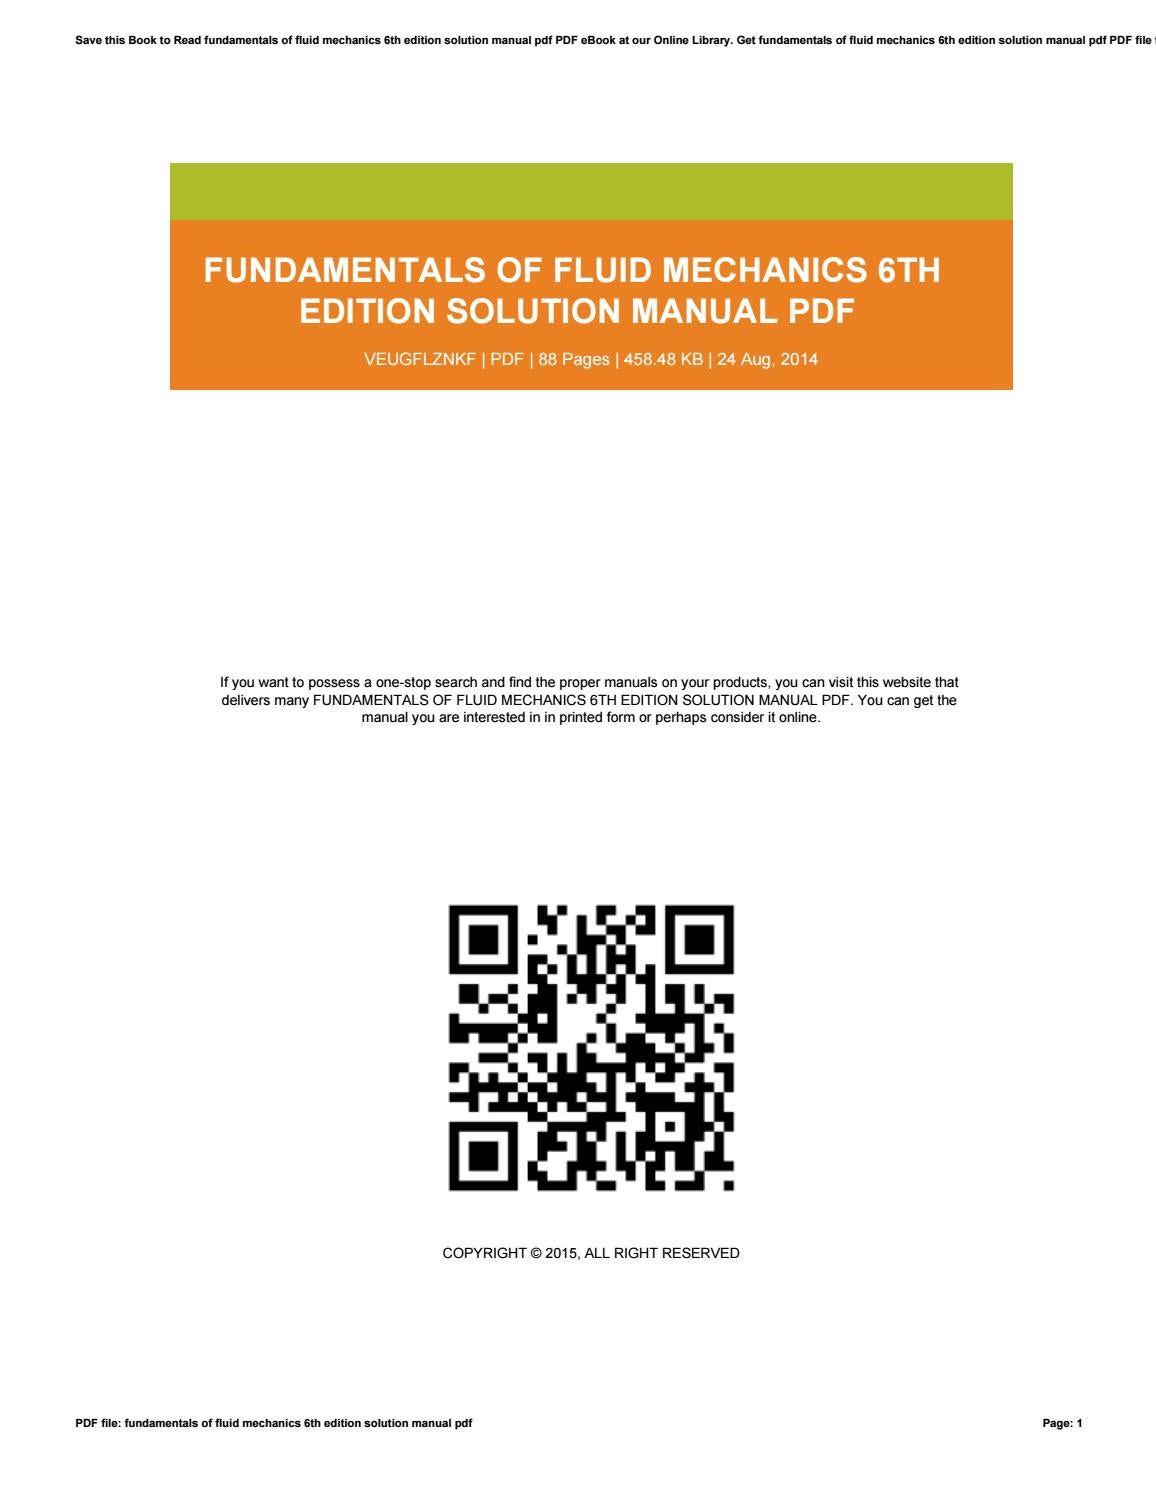 Fundamentals of fluid mechanics 6th edition solution manual pdf by  PeggyLett1964 - issuu